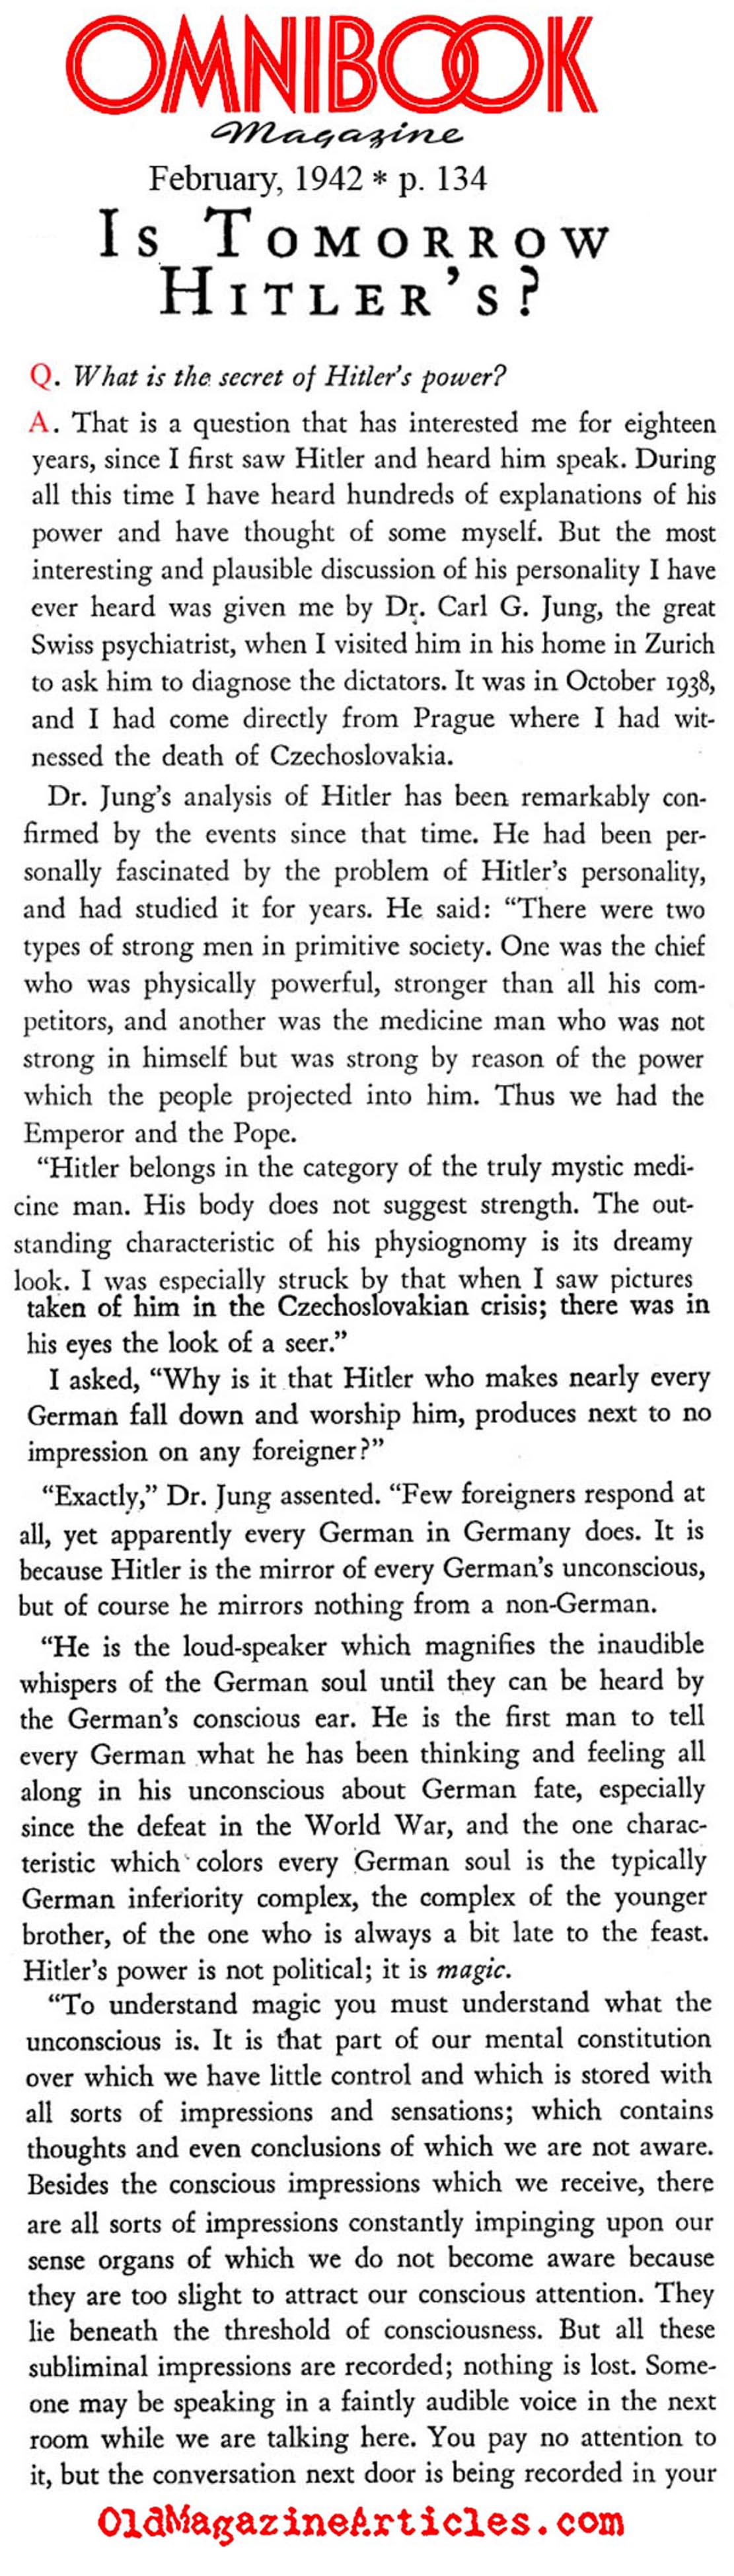 Carl Jung on Hitler (Omnibook Magazine, 1942)